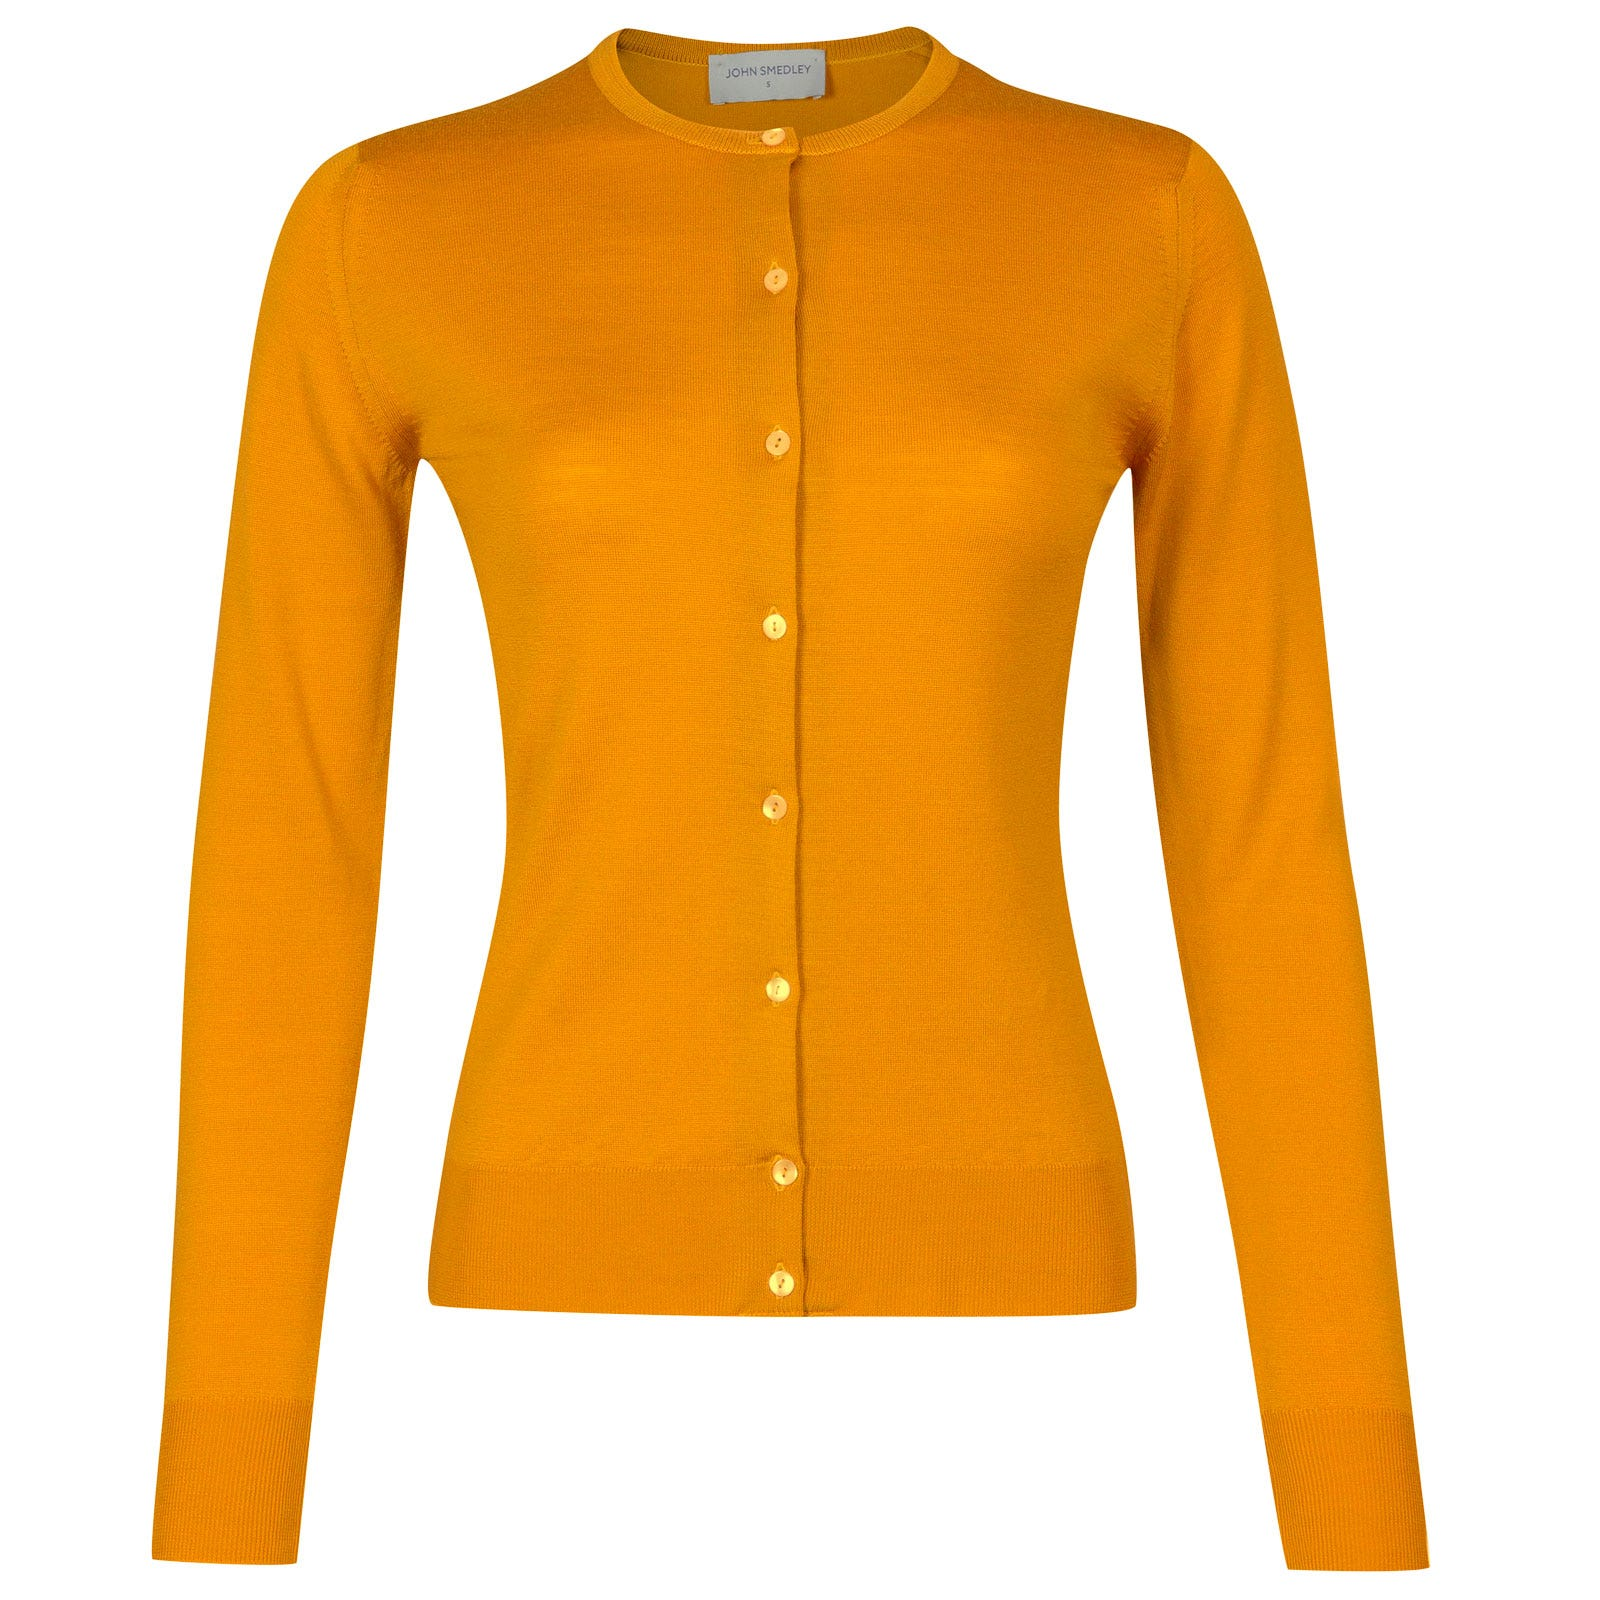 John Smedley pansy Merino Wool Cardigan in Buckthorn Orange-XL